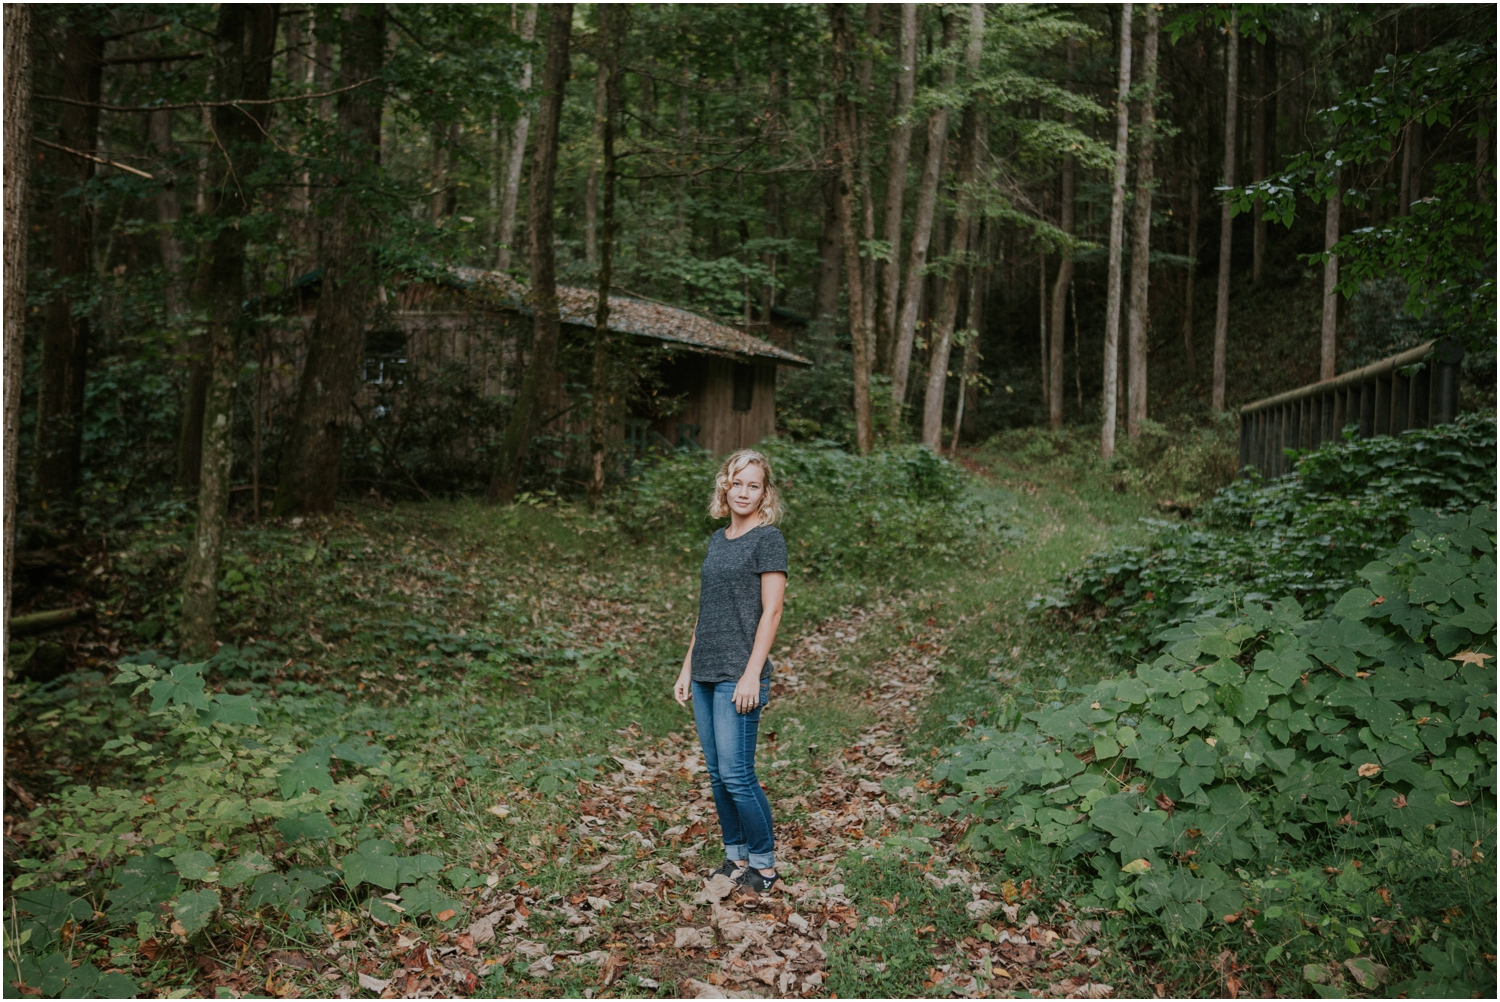 She helped me scout locations and test the light for an upcoming wedding at the Camp at Buffalo Mountain!